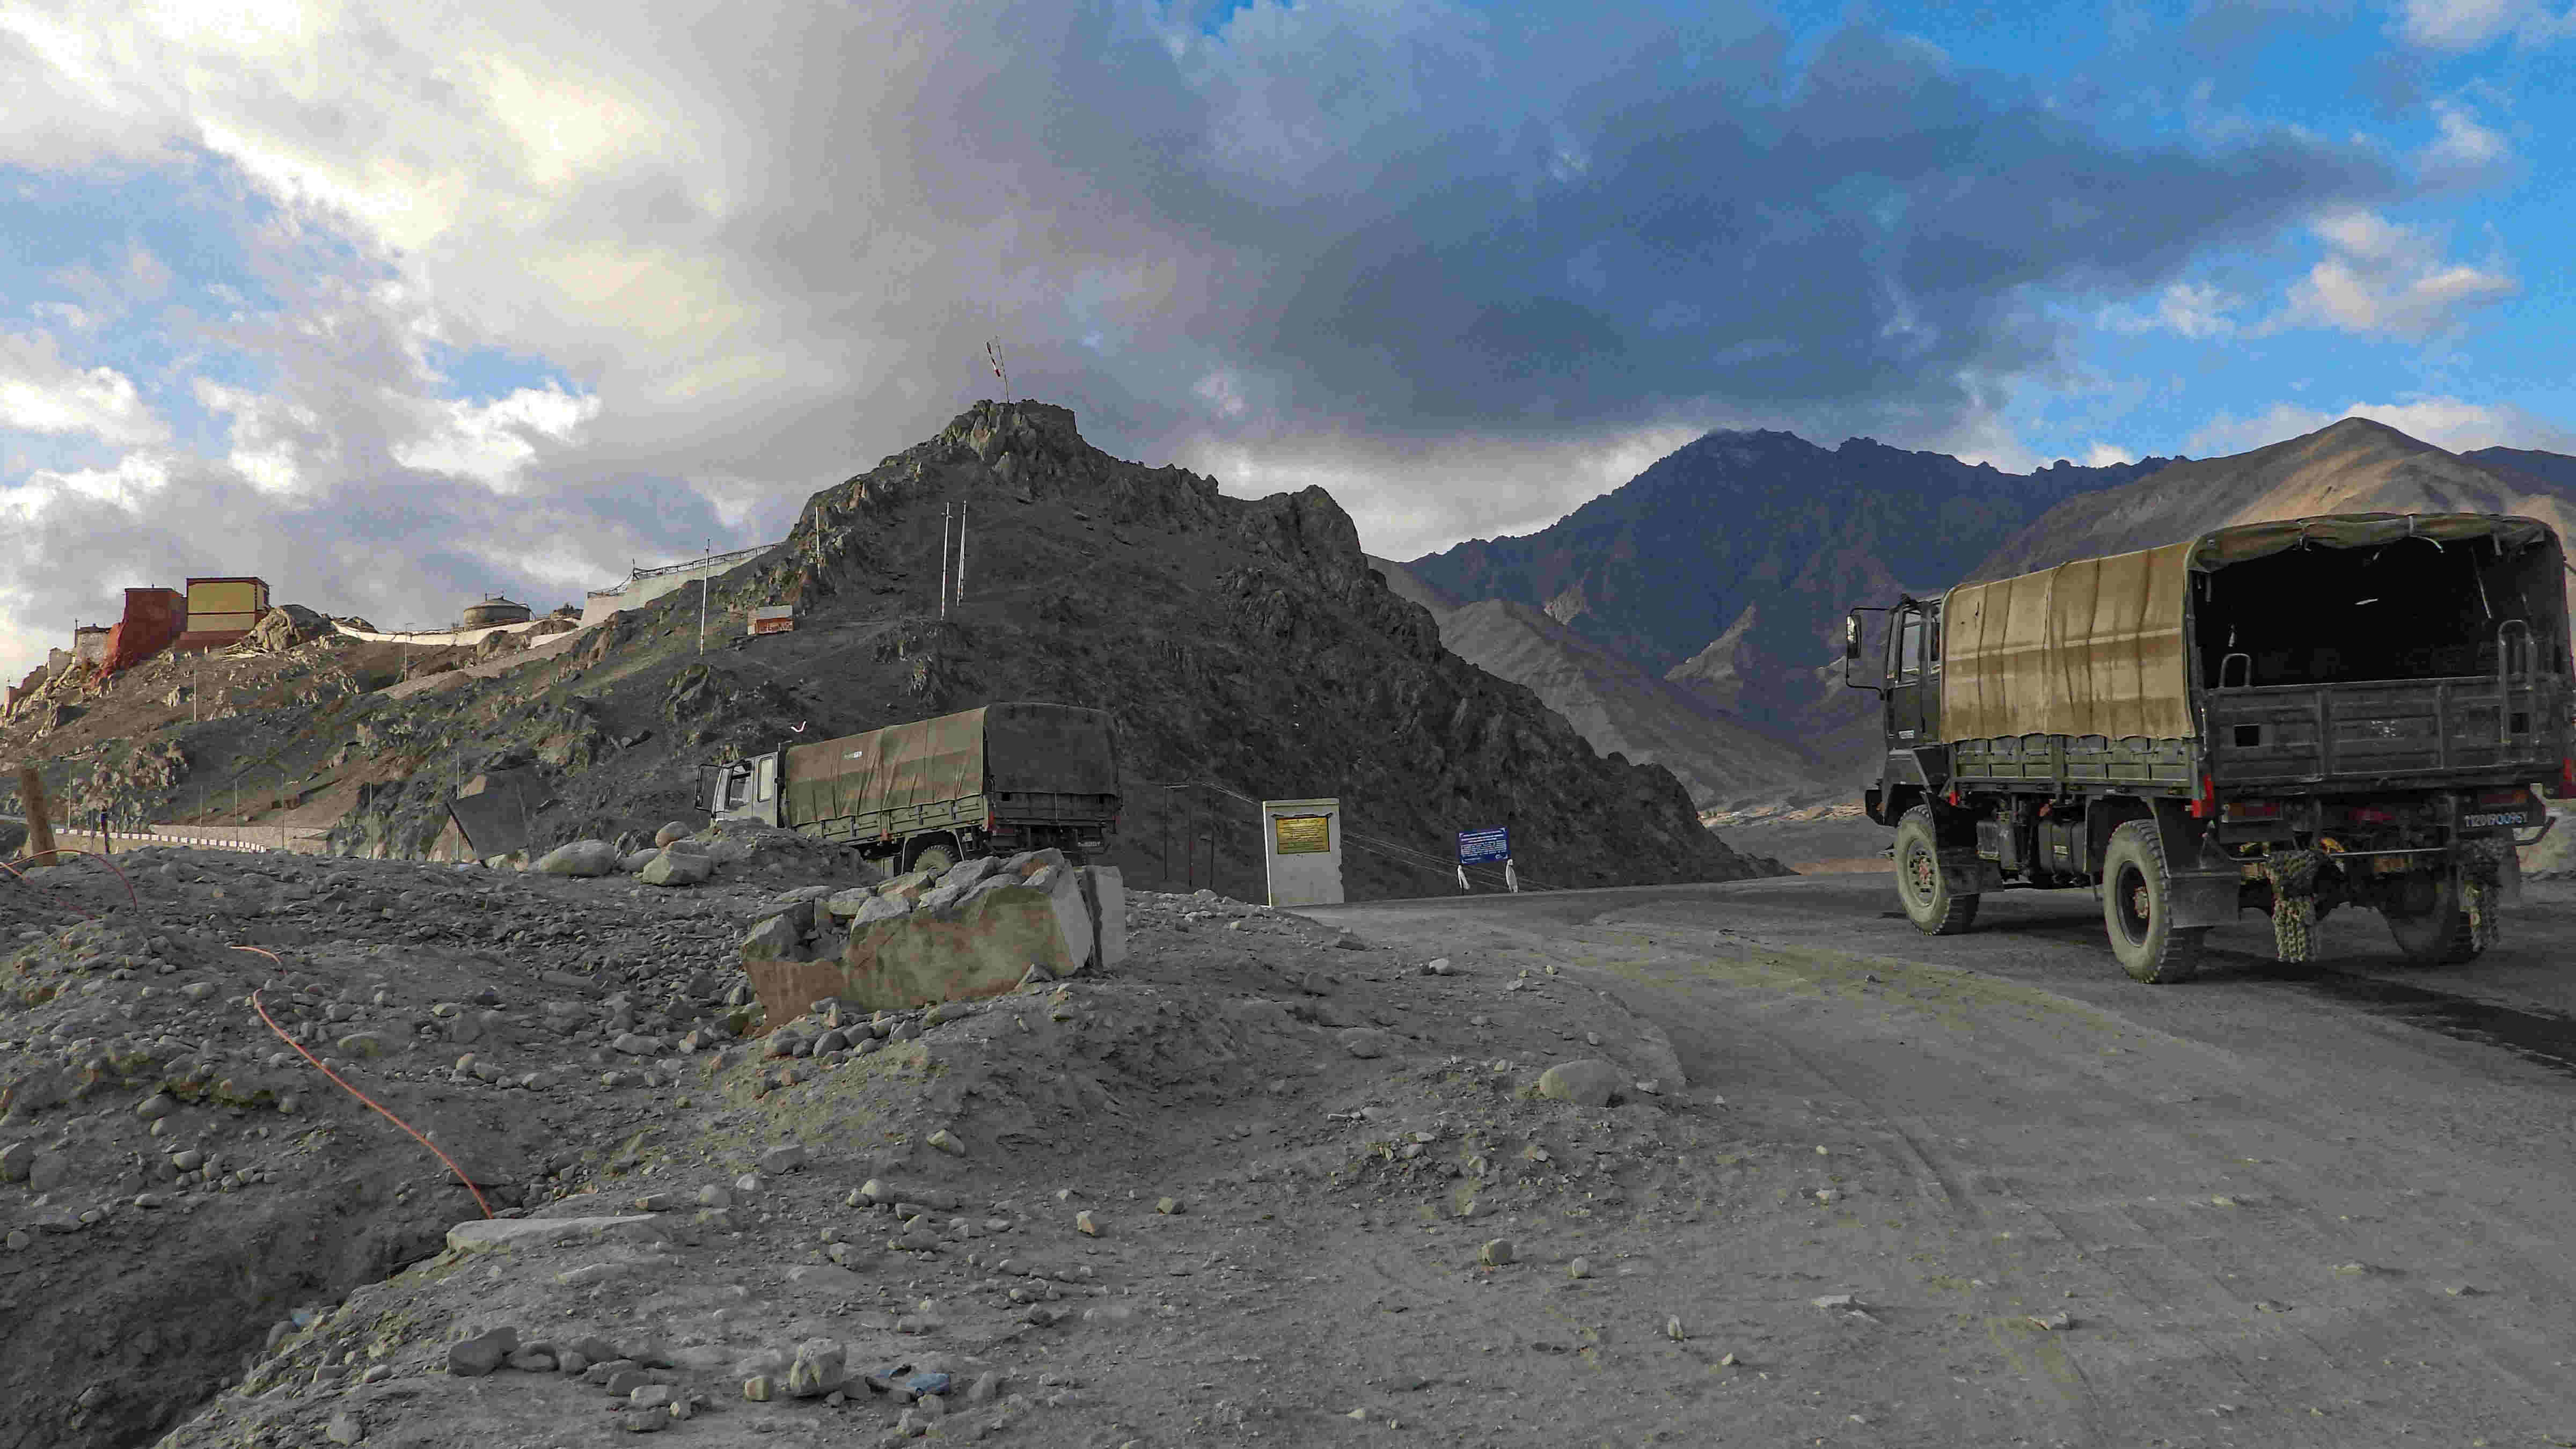 China opposed to Indian infrastructure development at Ladakh borders